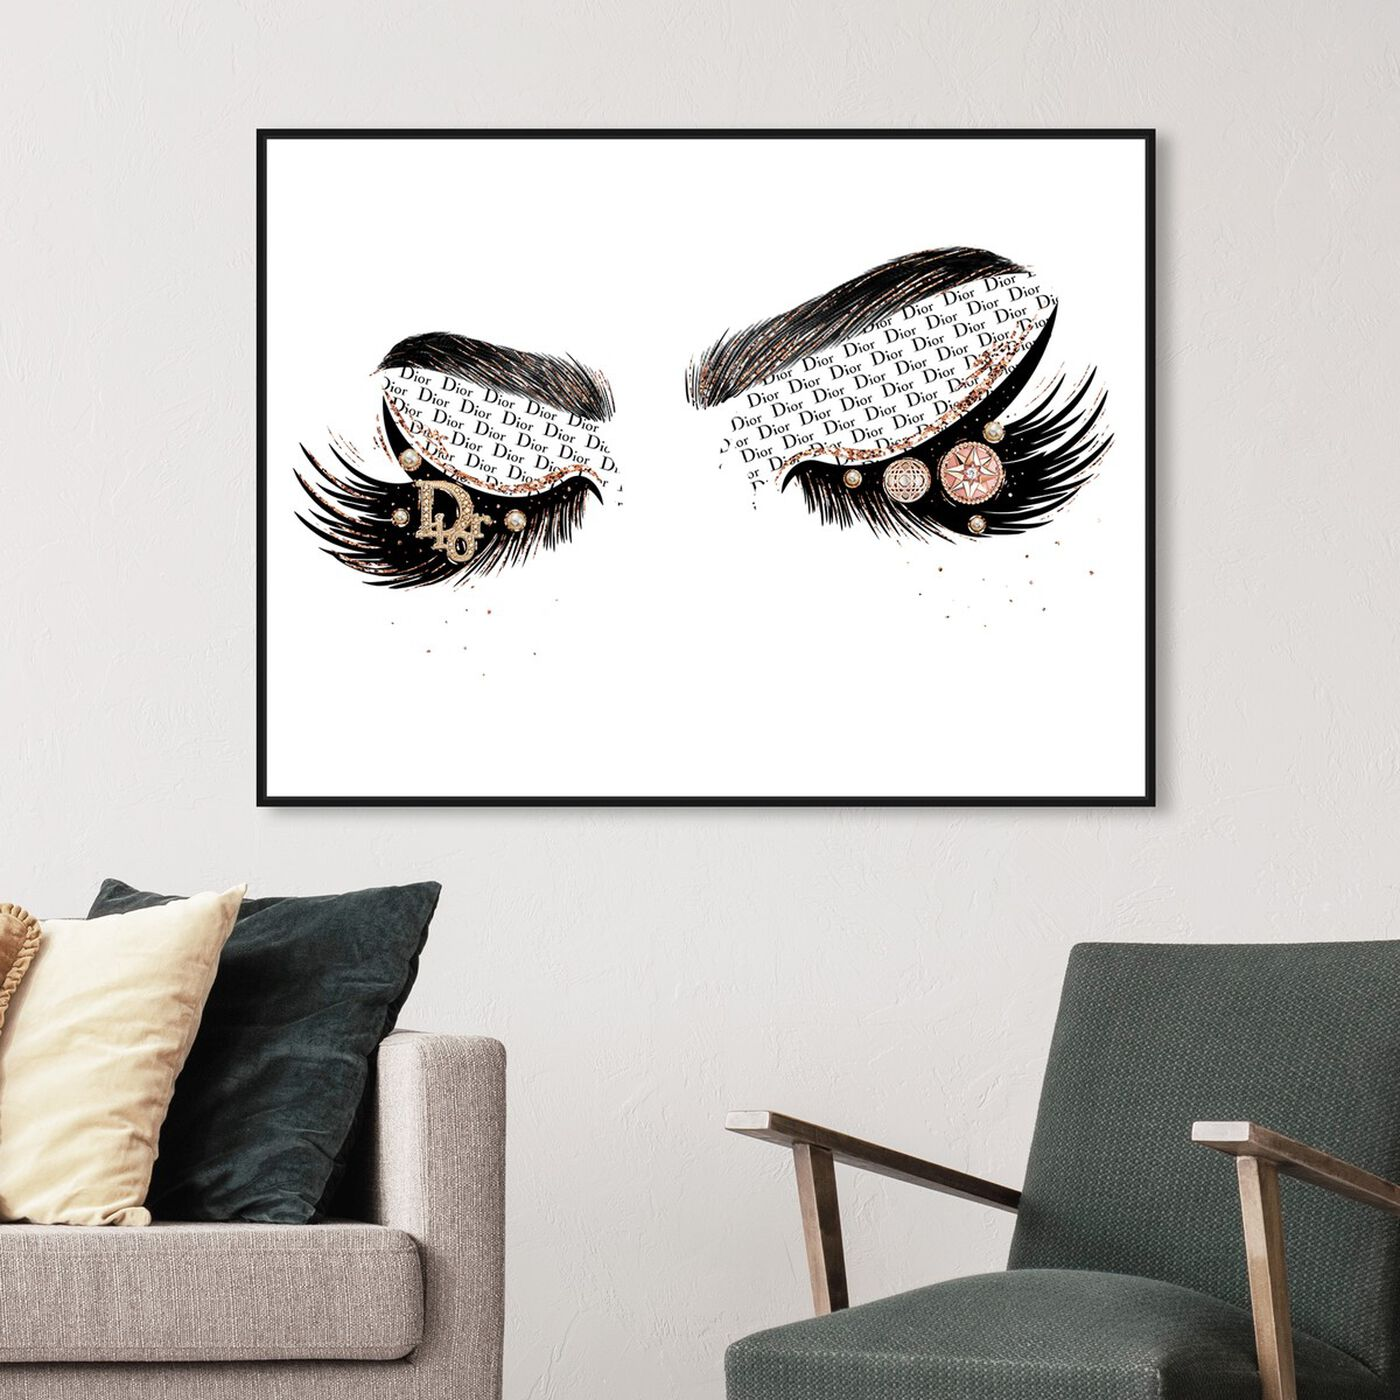 Hanging view of News and Eyeshadows featuring fashion and glam and makeup art.